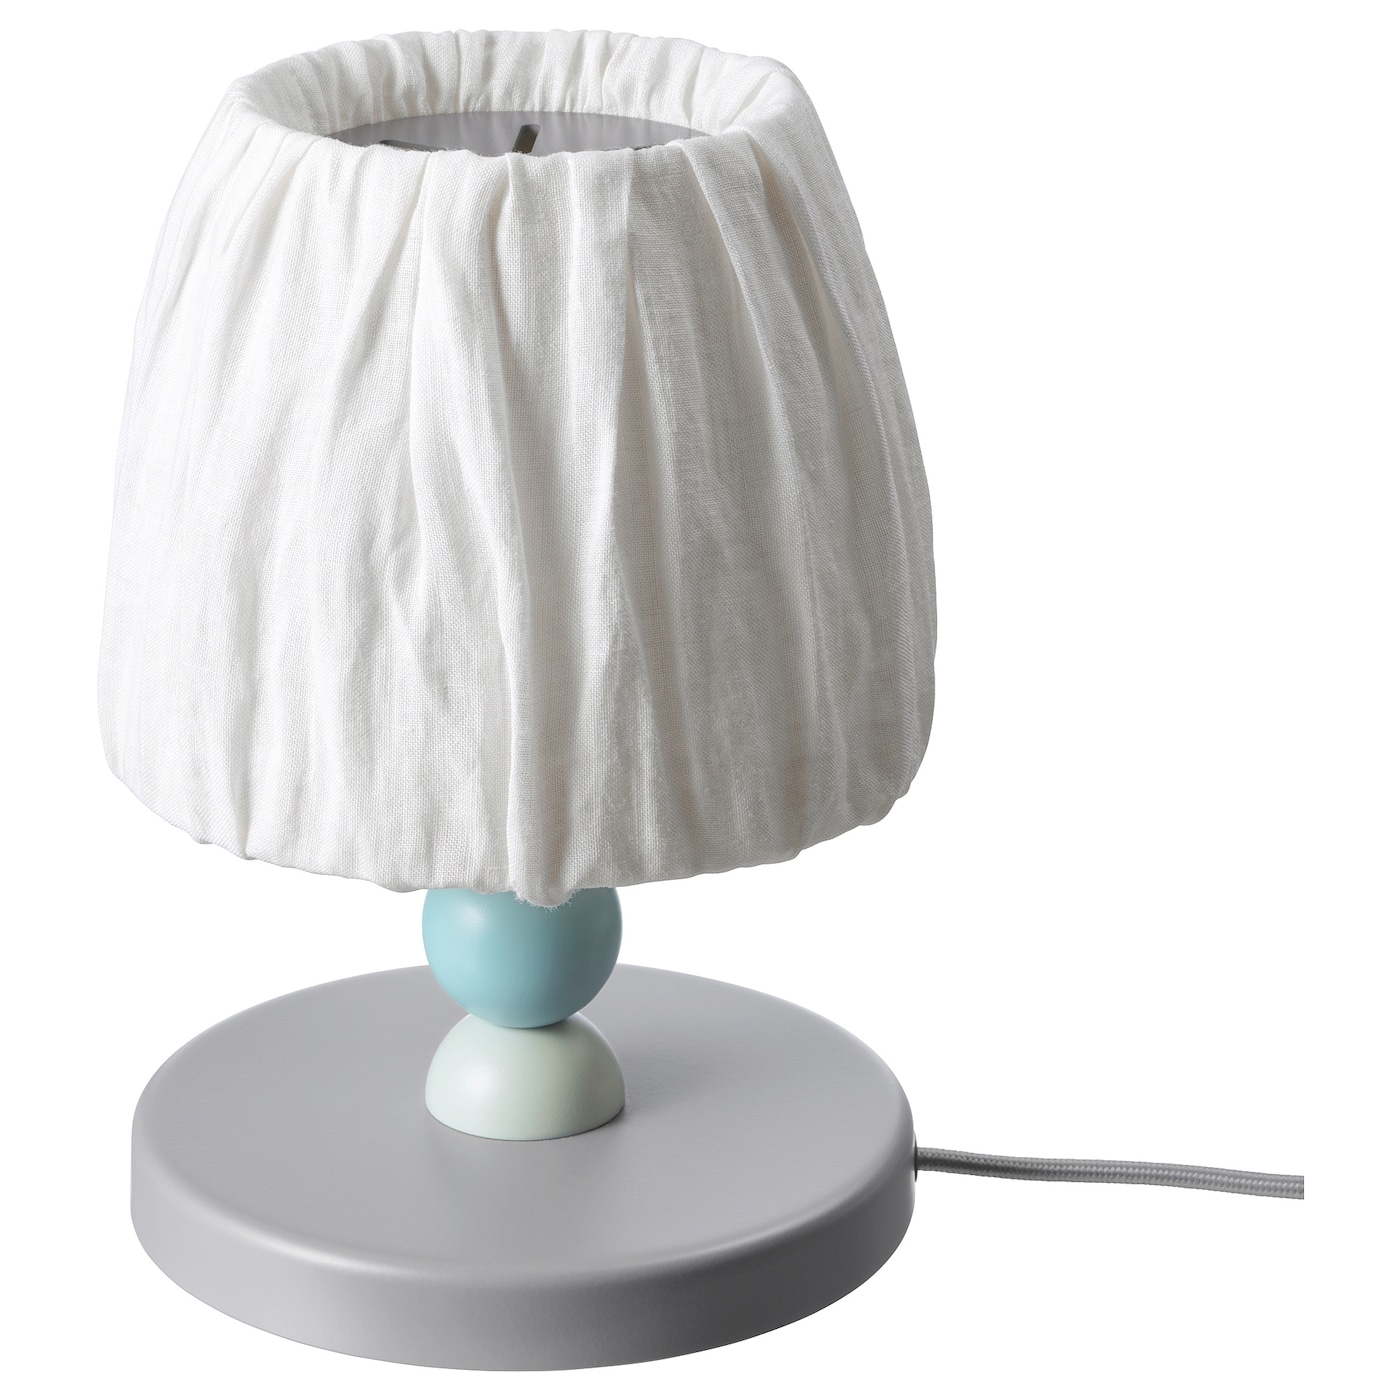 IKEA LANTLIG LED table lamp Tested and approved for children.